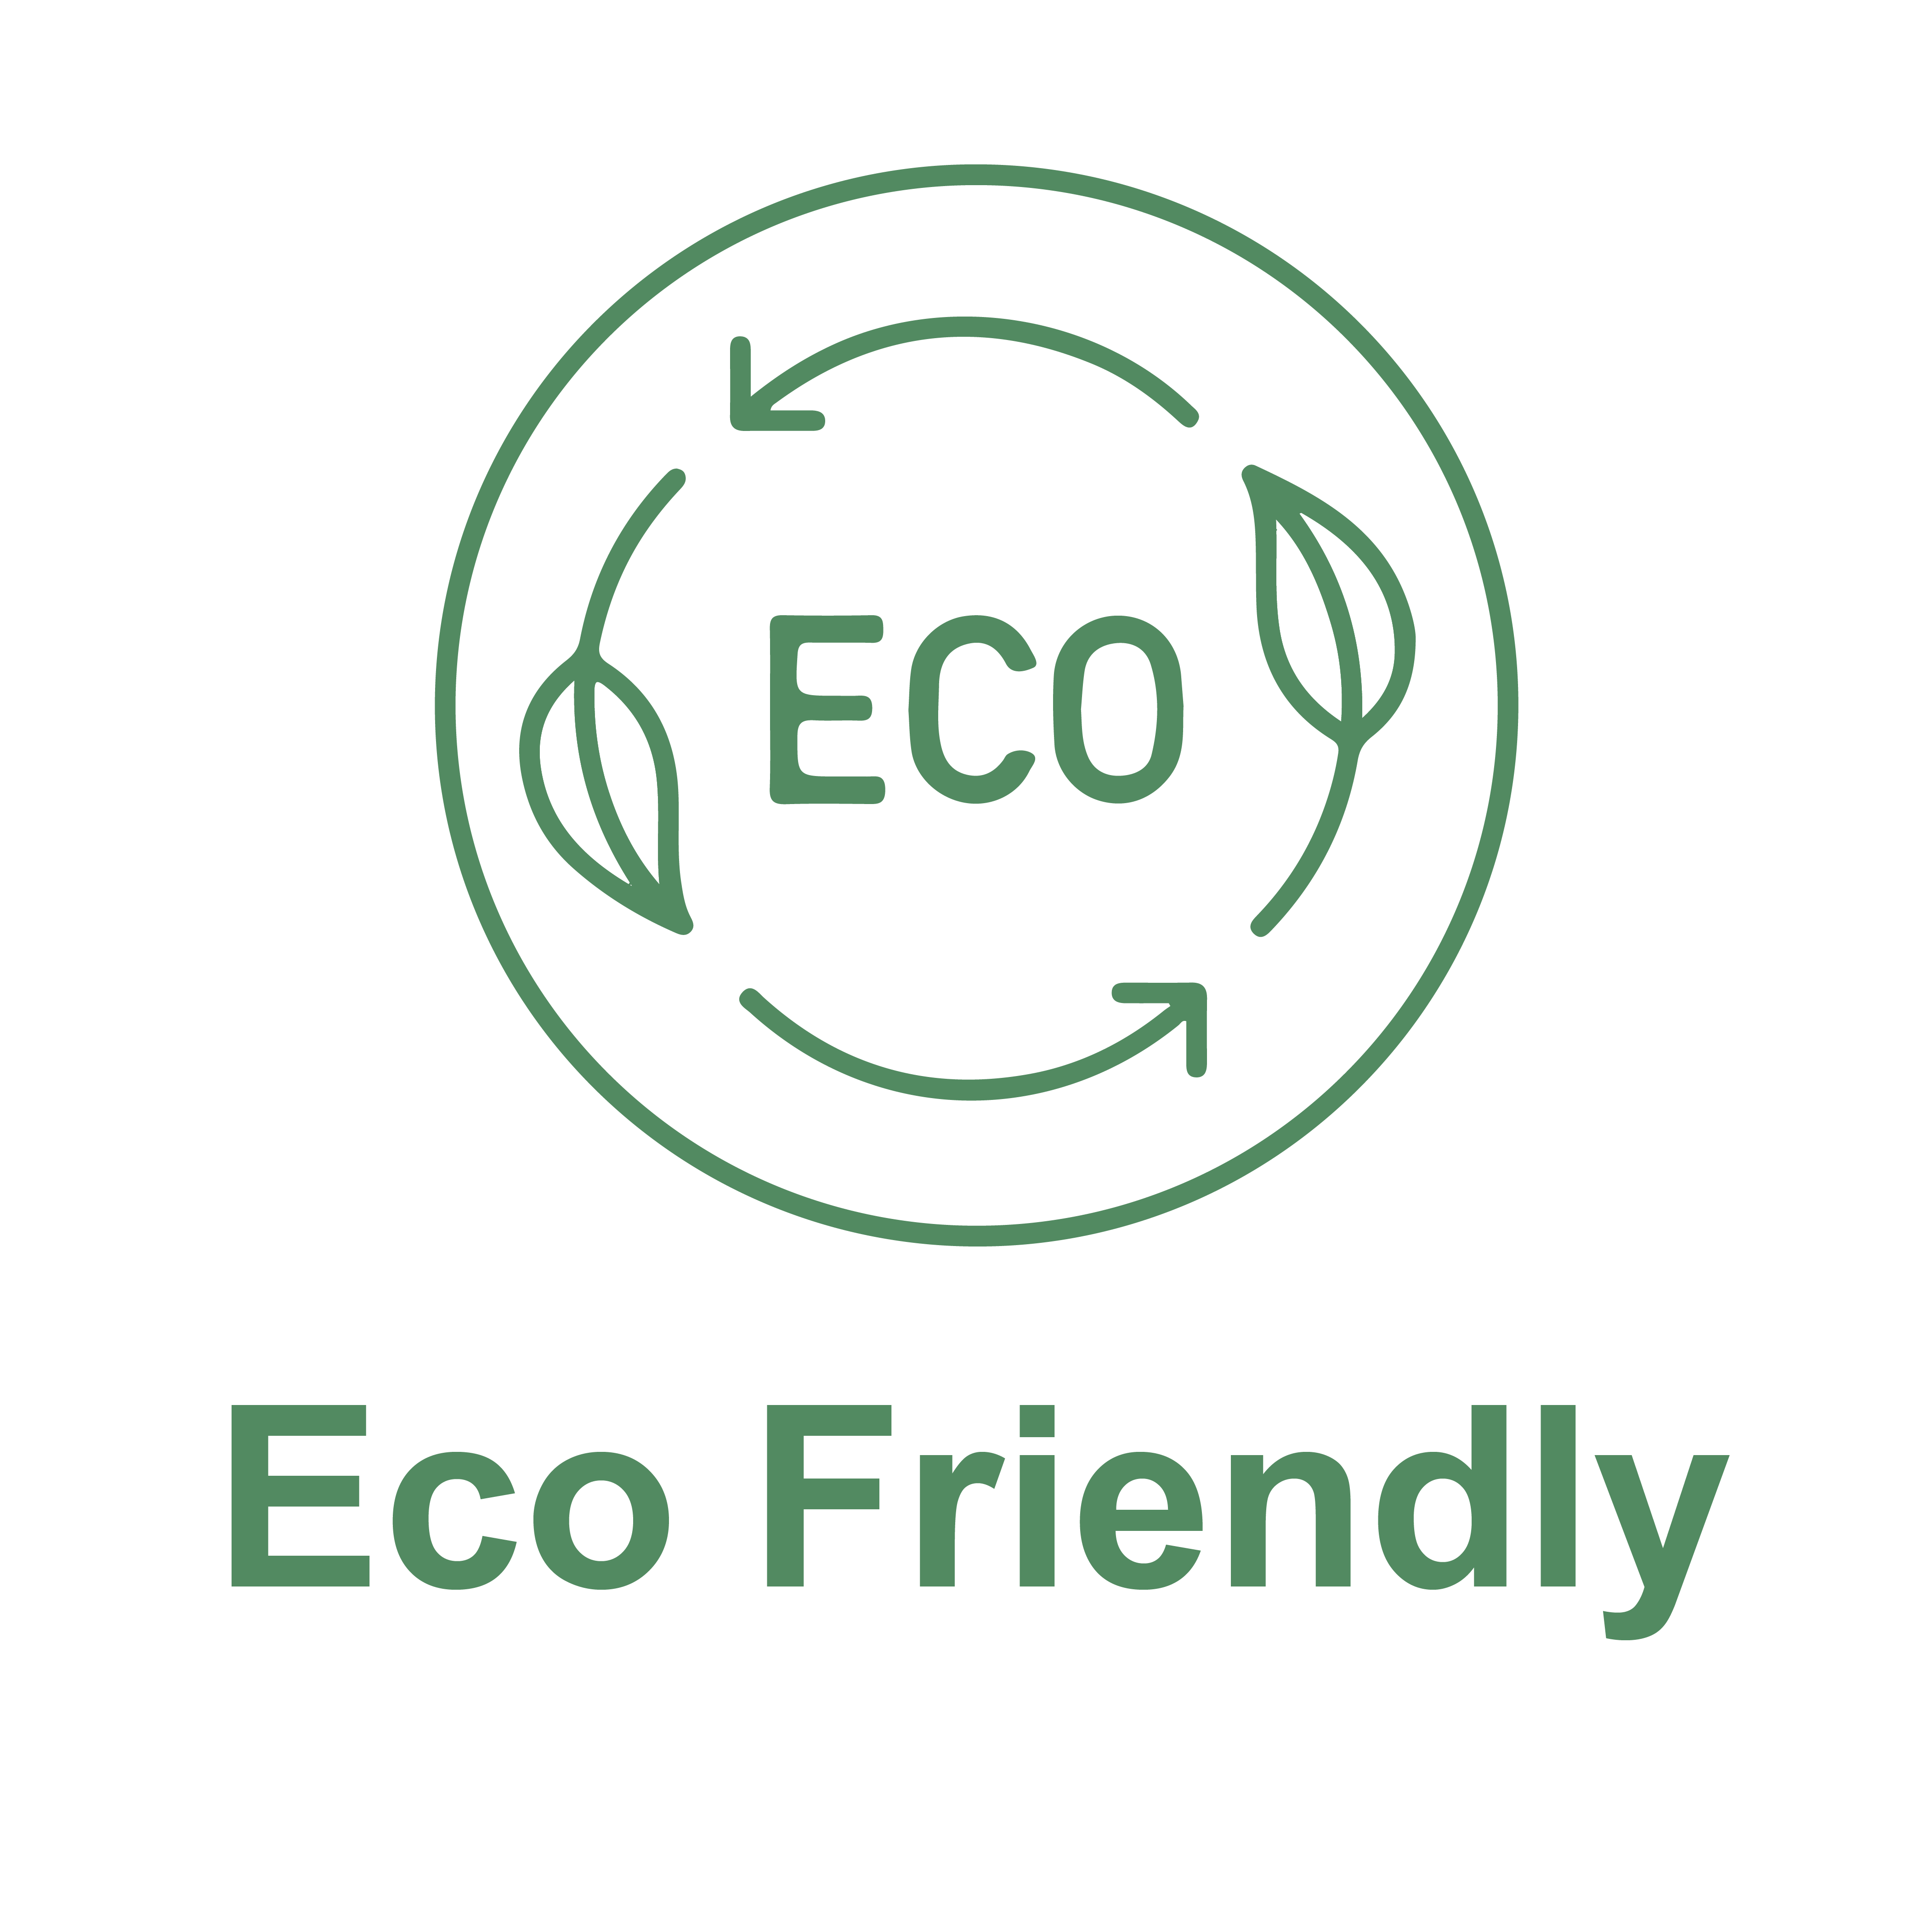 This product is Eco Friendly.